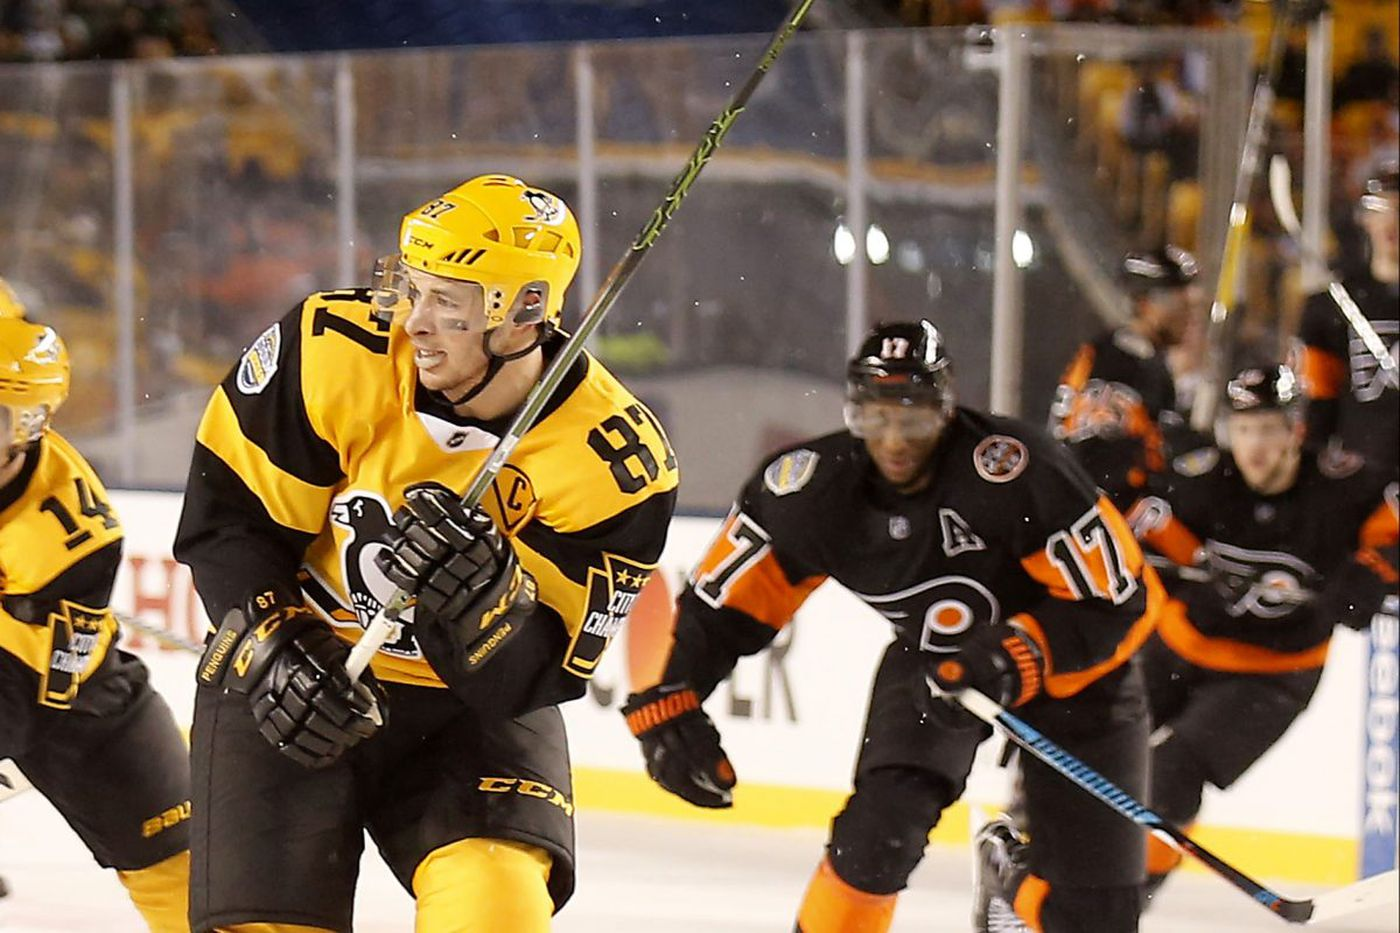 Flyers-Penguins preview: Pittsburgh is slumping, but still has Sidney Crosby